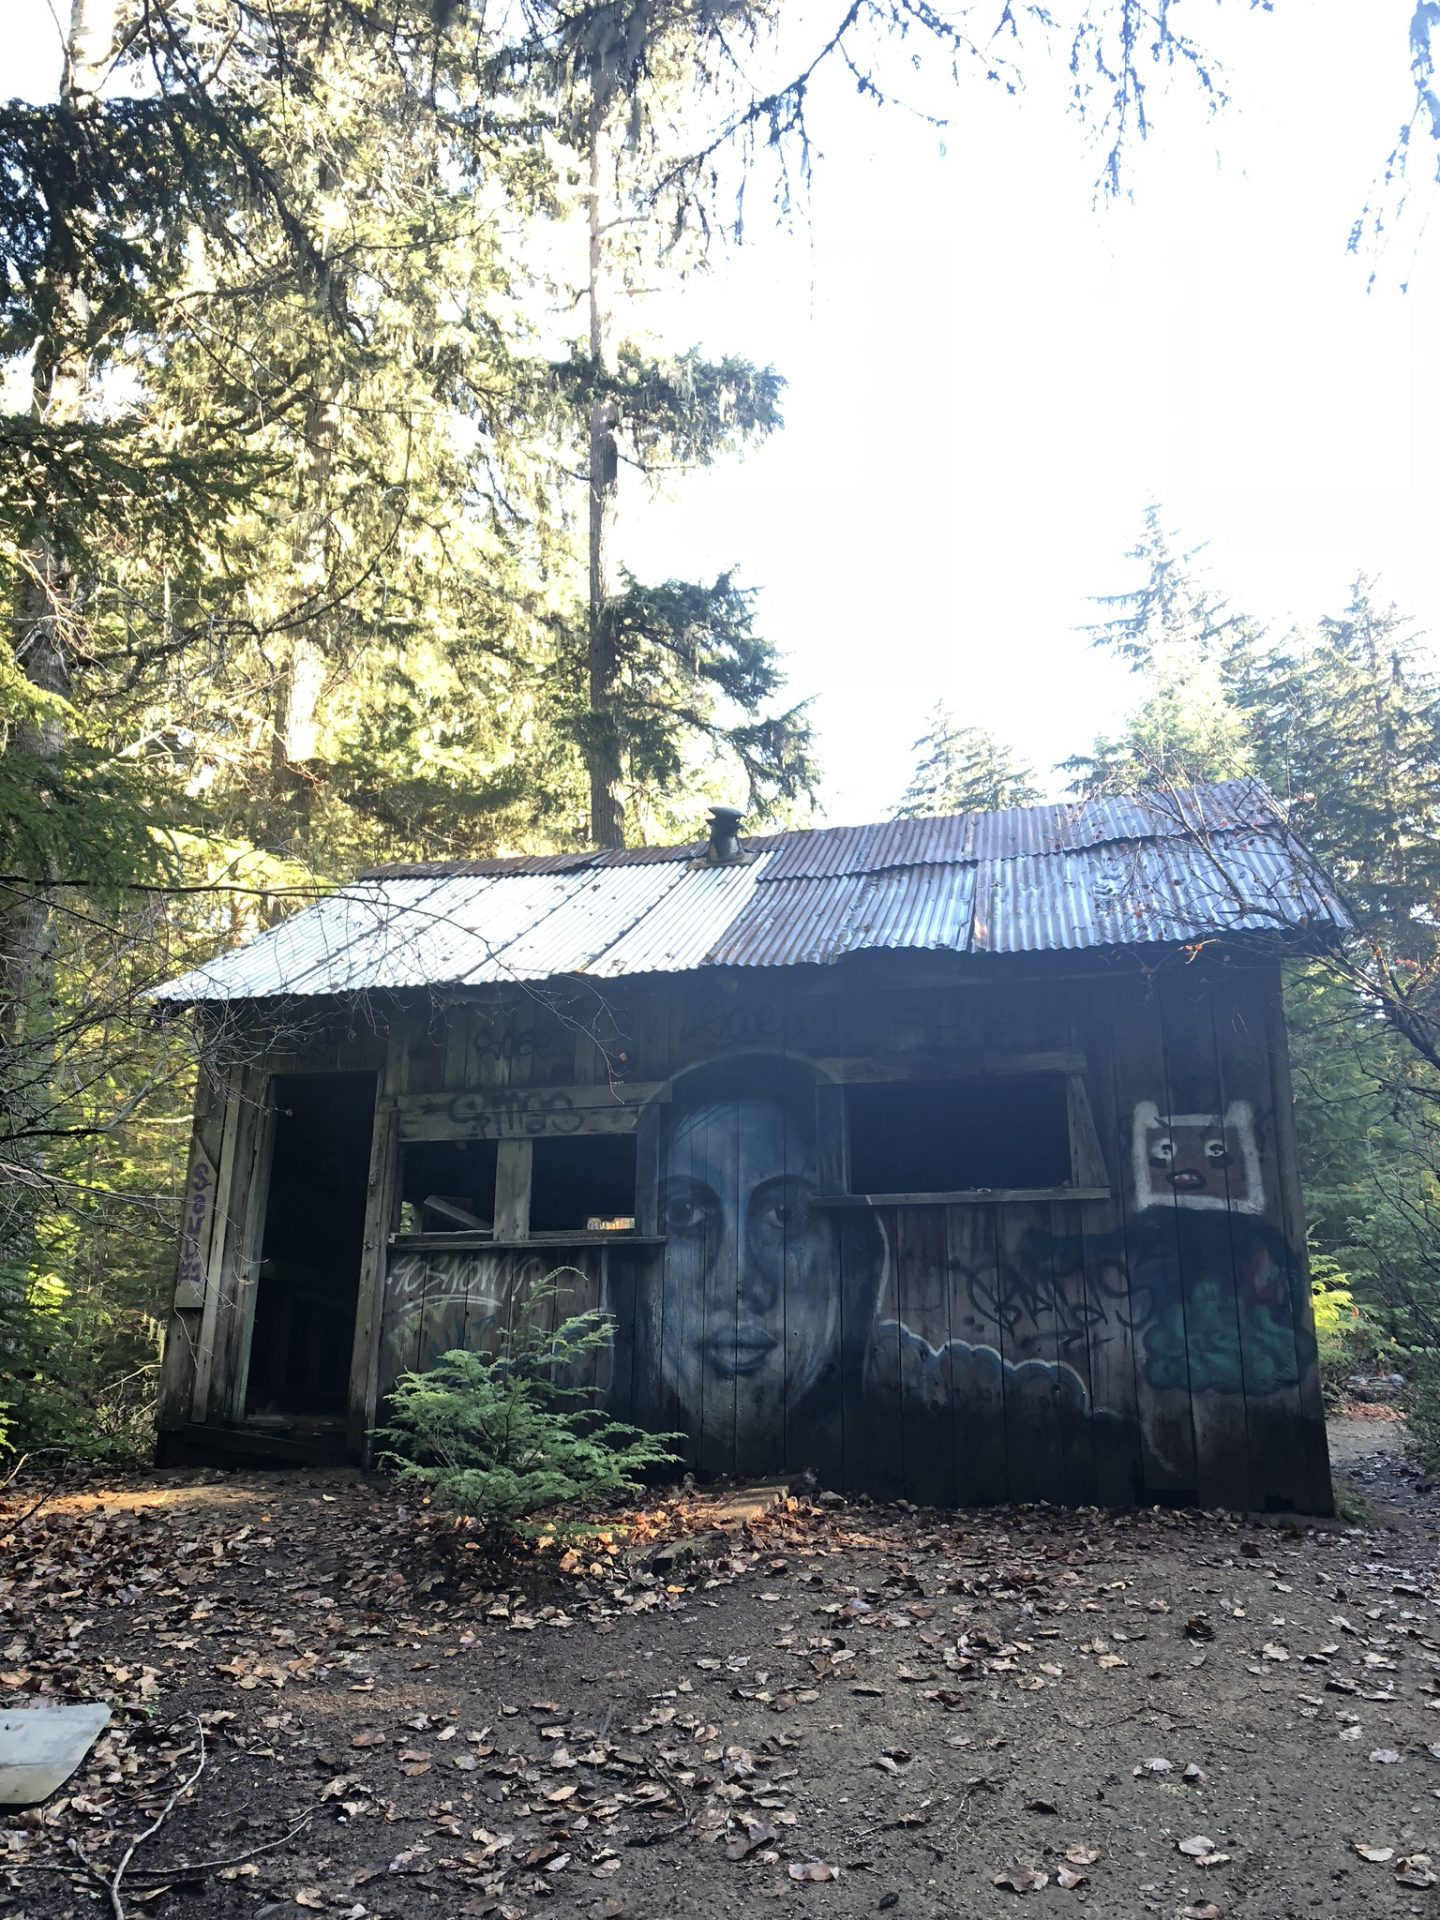 Large abandoned house in Parkhurst ghost town near Whistler, BC